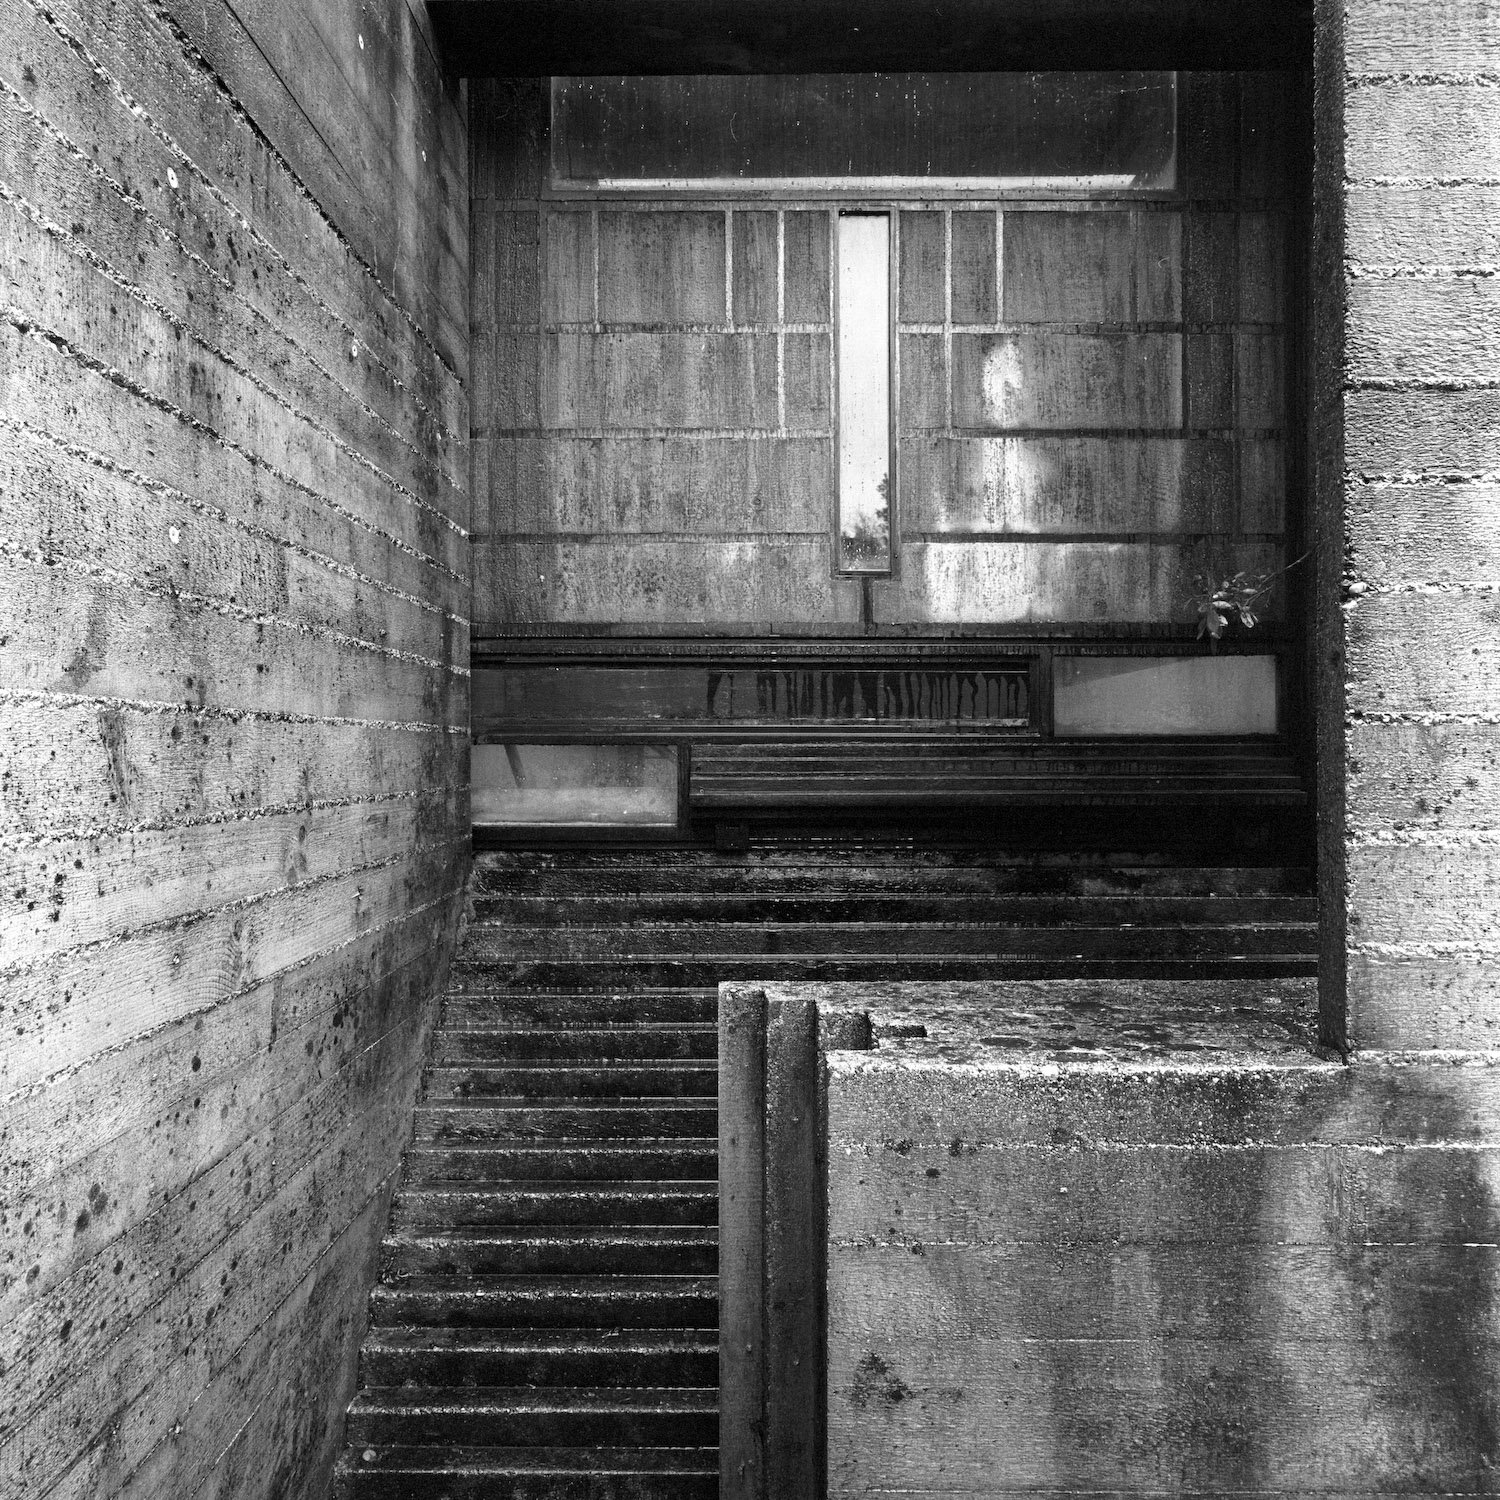 CARLO SCARPA. TOMBA BRION. San Vito (TV)